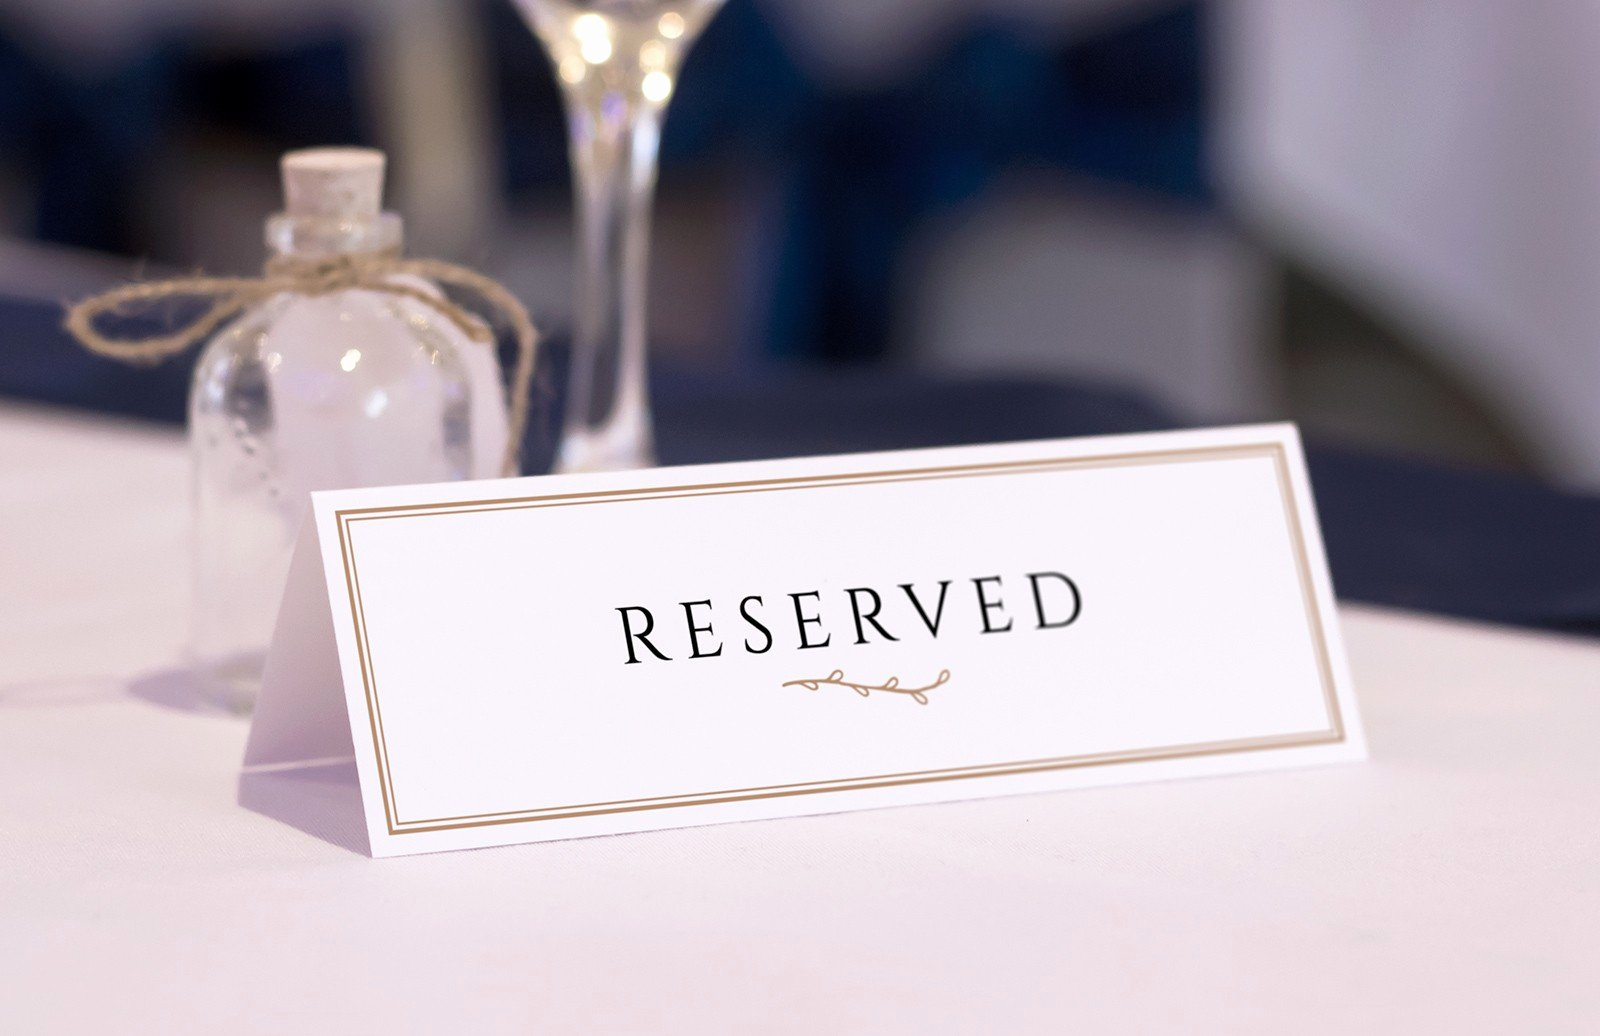 Table Reservation Template Inspirational Reserved Table Card Mockups — Medialoot